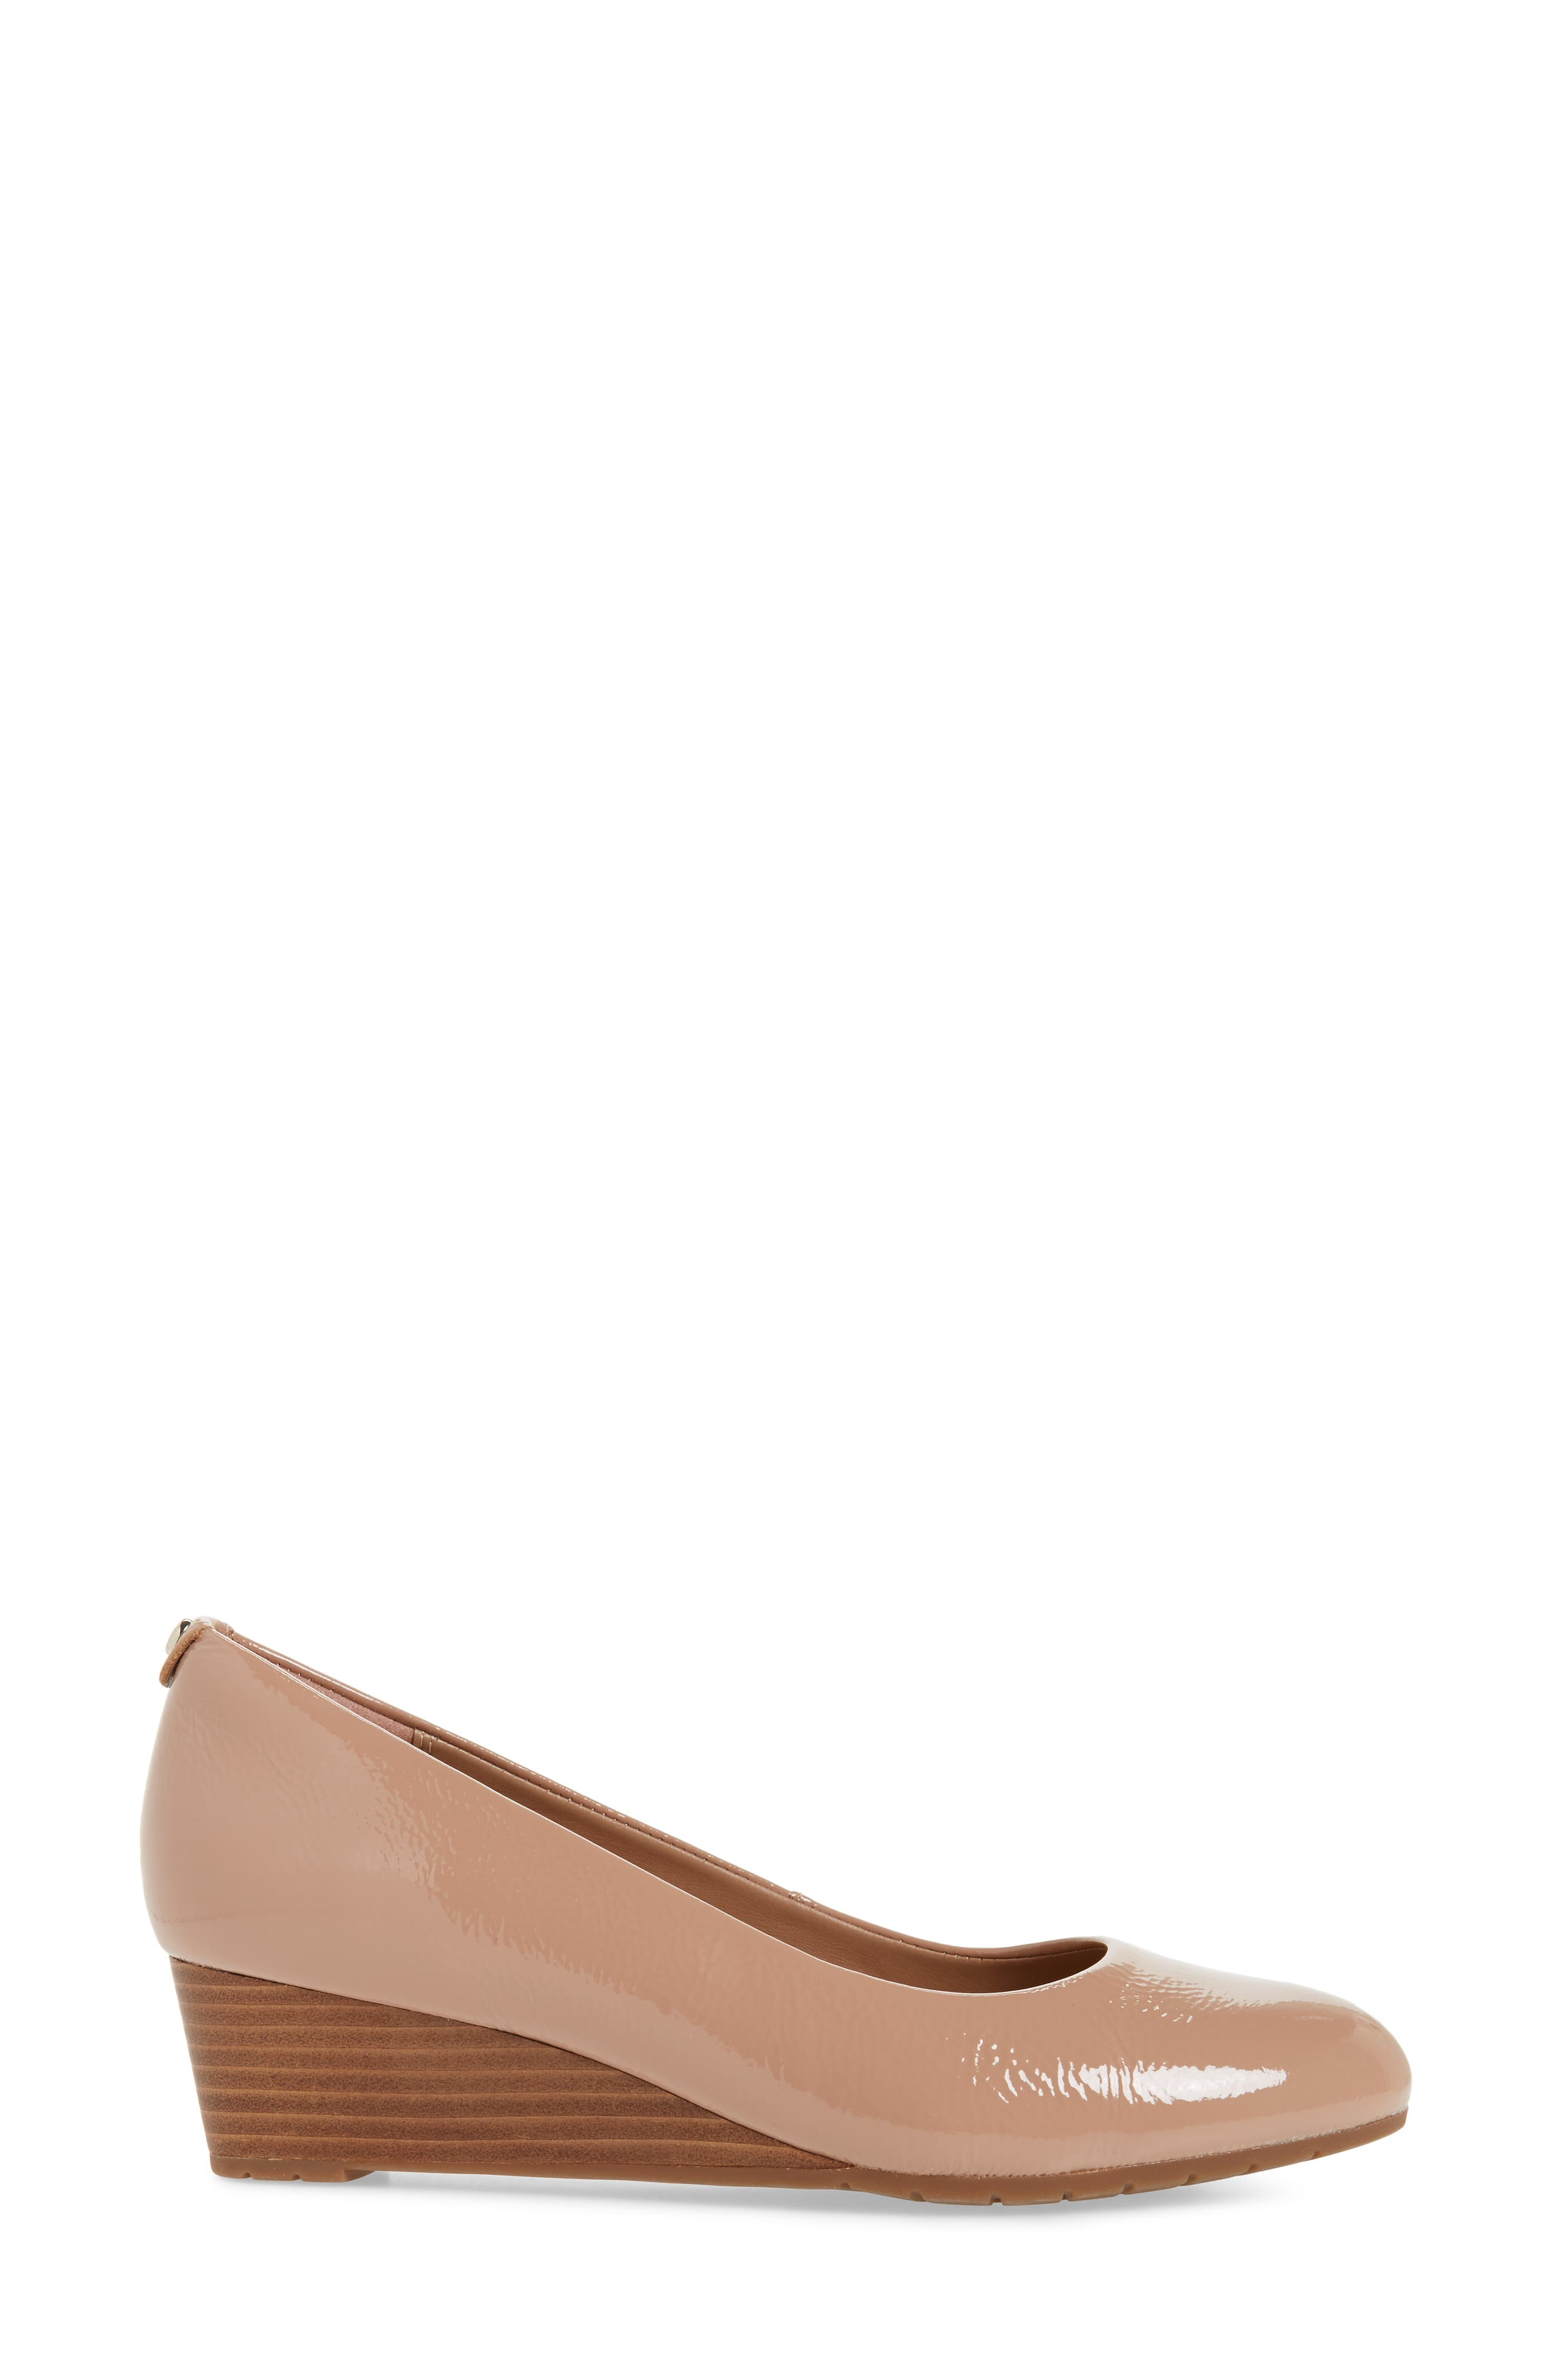 Vendra Bloom Wedge Pump,                             Alternate thumbnail 3, color,                             Beige Patent Leather